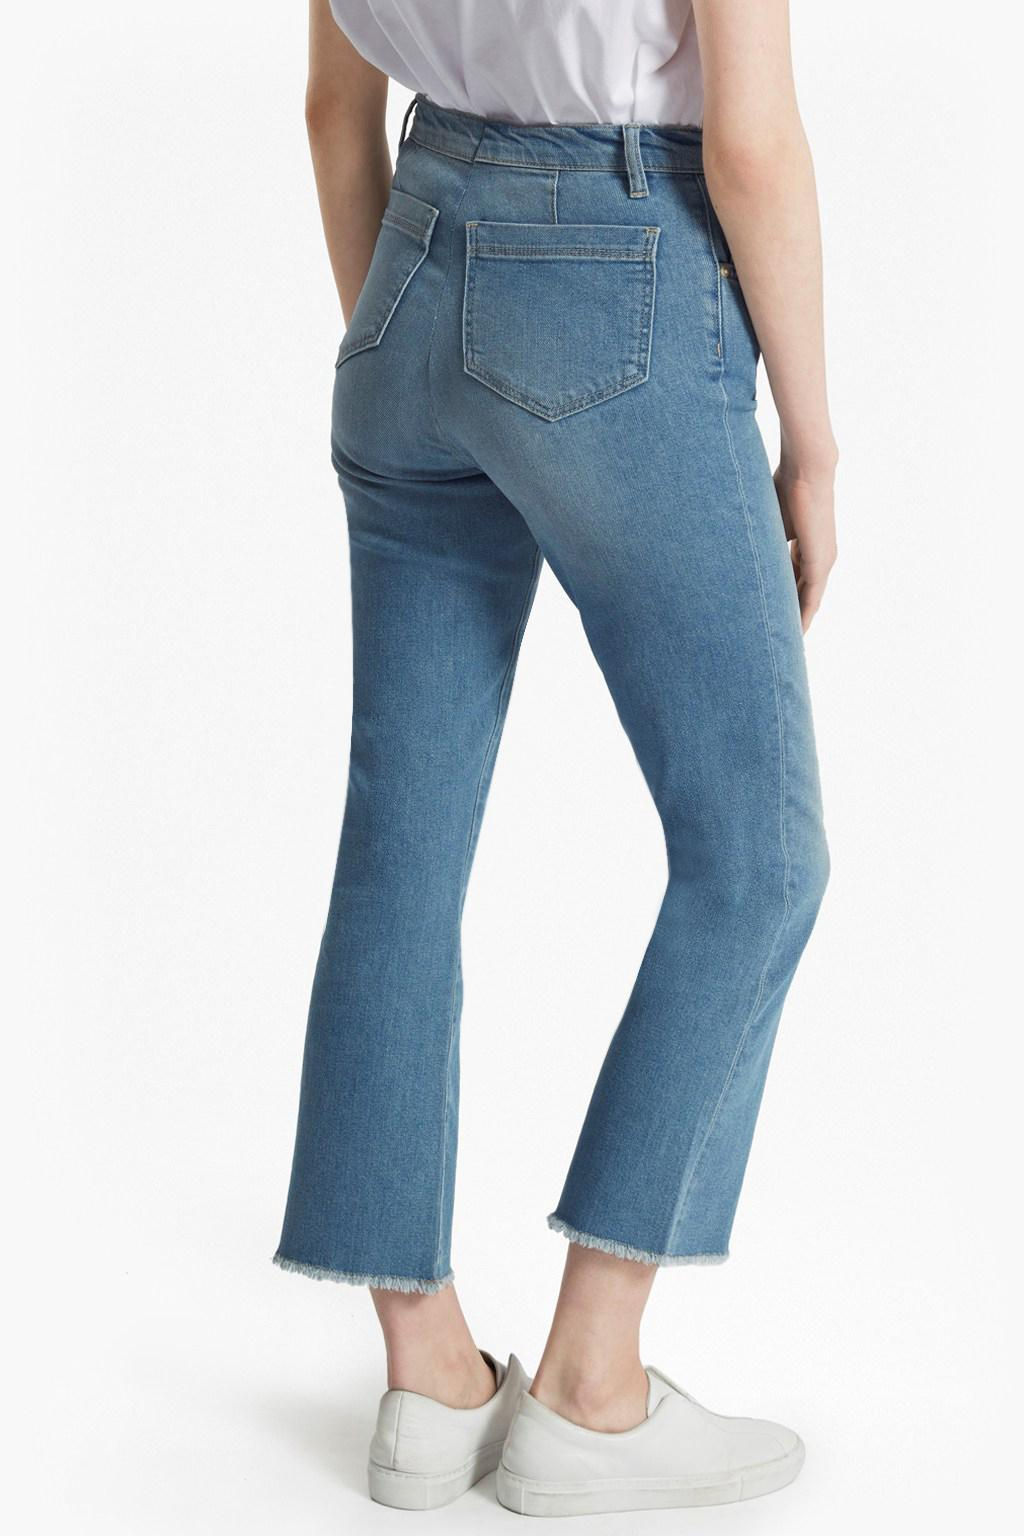 French Connection Ash Denim Cropped Kick Flare Jeans in Blue